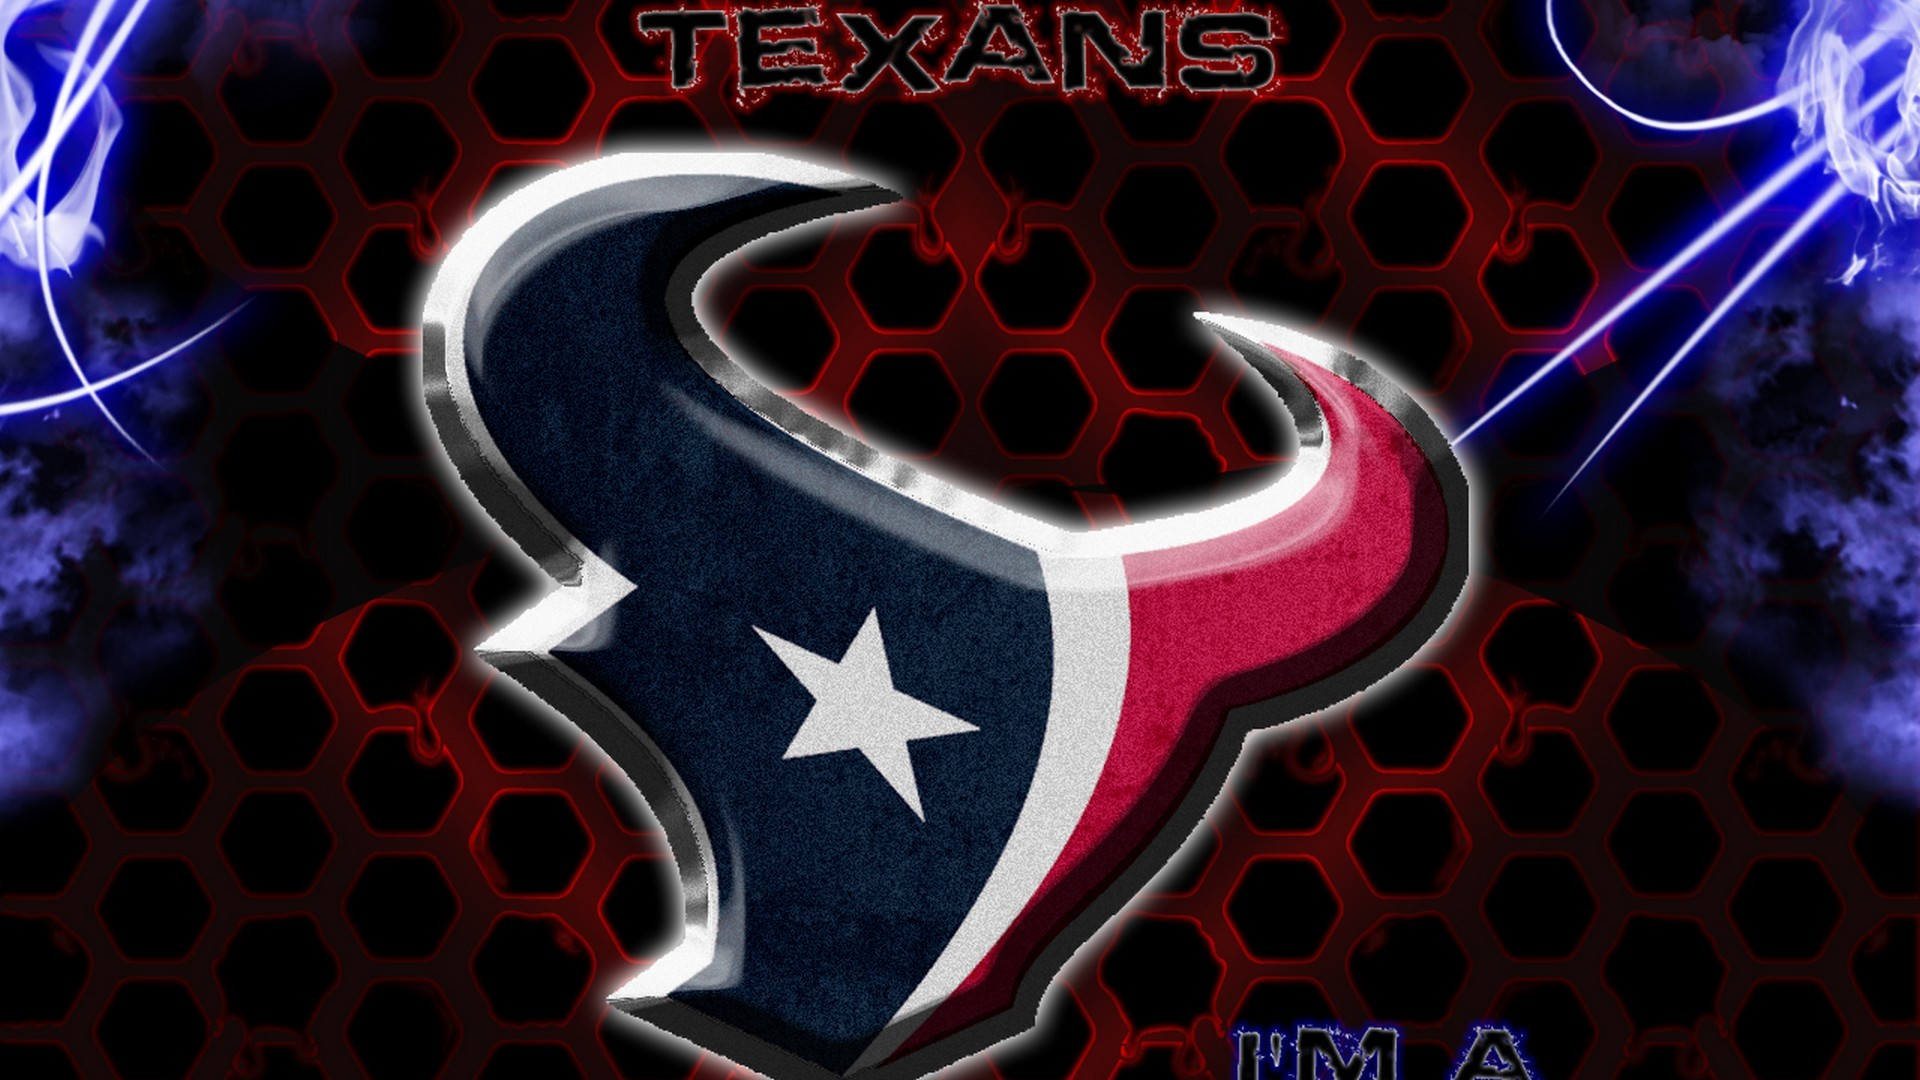 1920x1080 Houston Texans NFL Wallpaper For Mac Backgrounds with resolution   pixel. You can make this